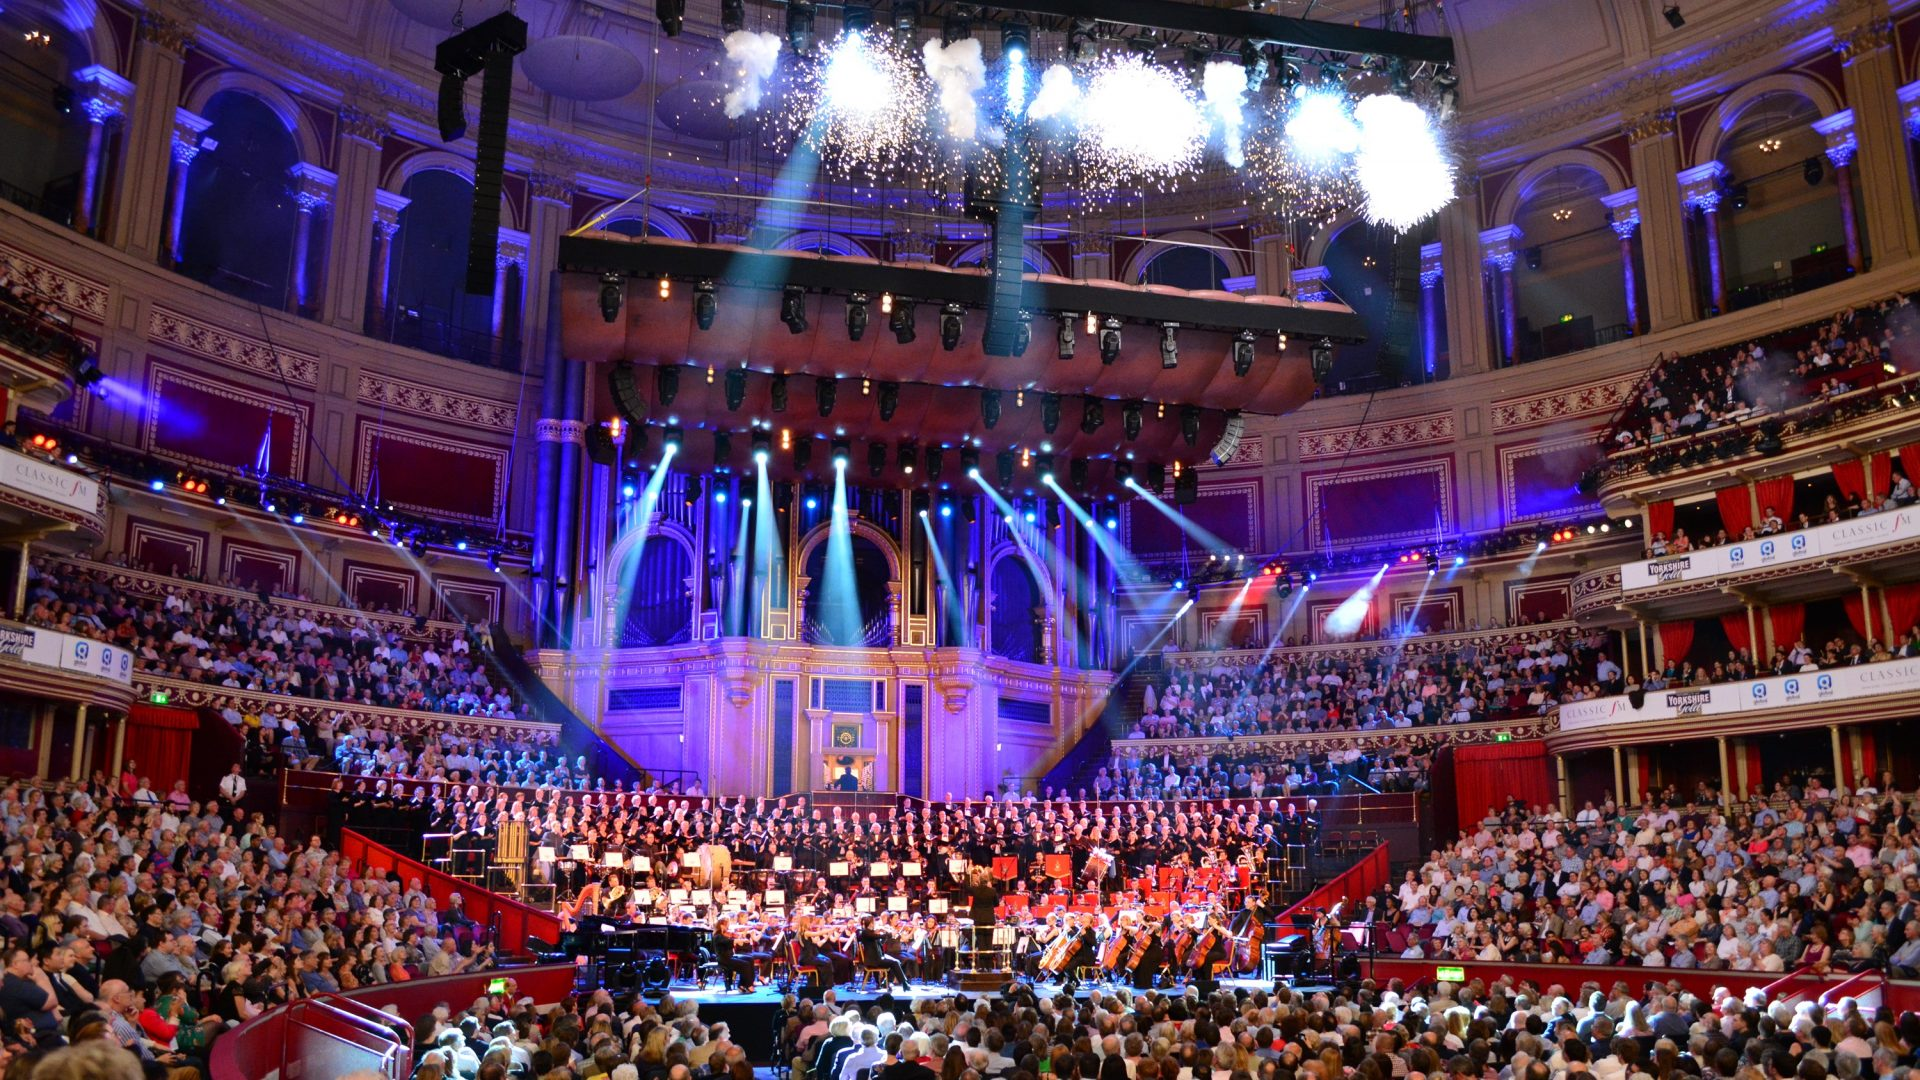 The Orchestra perform on the Royal Albert Hall stage with indoor fireworks and purple lights.